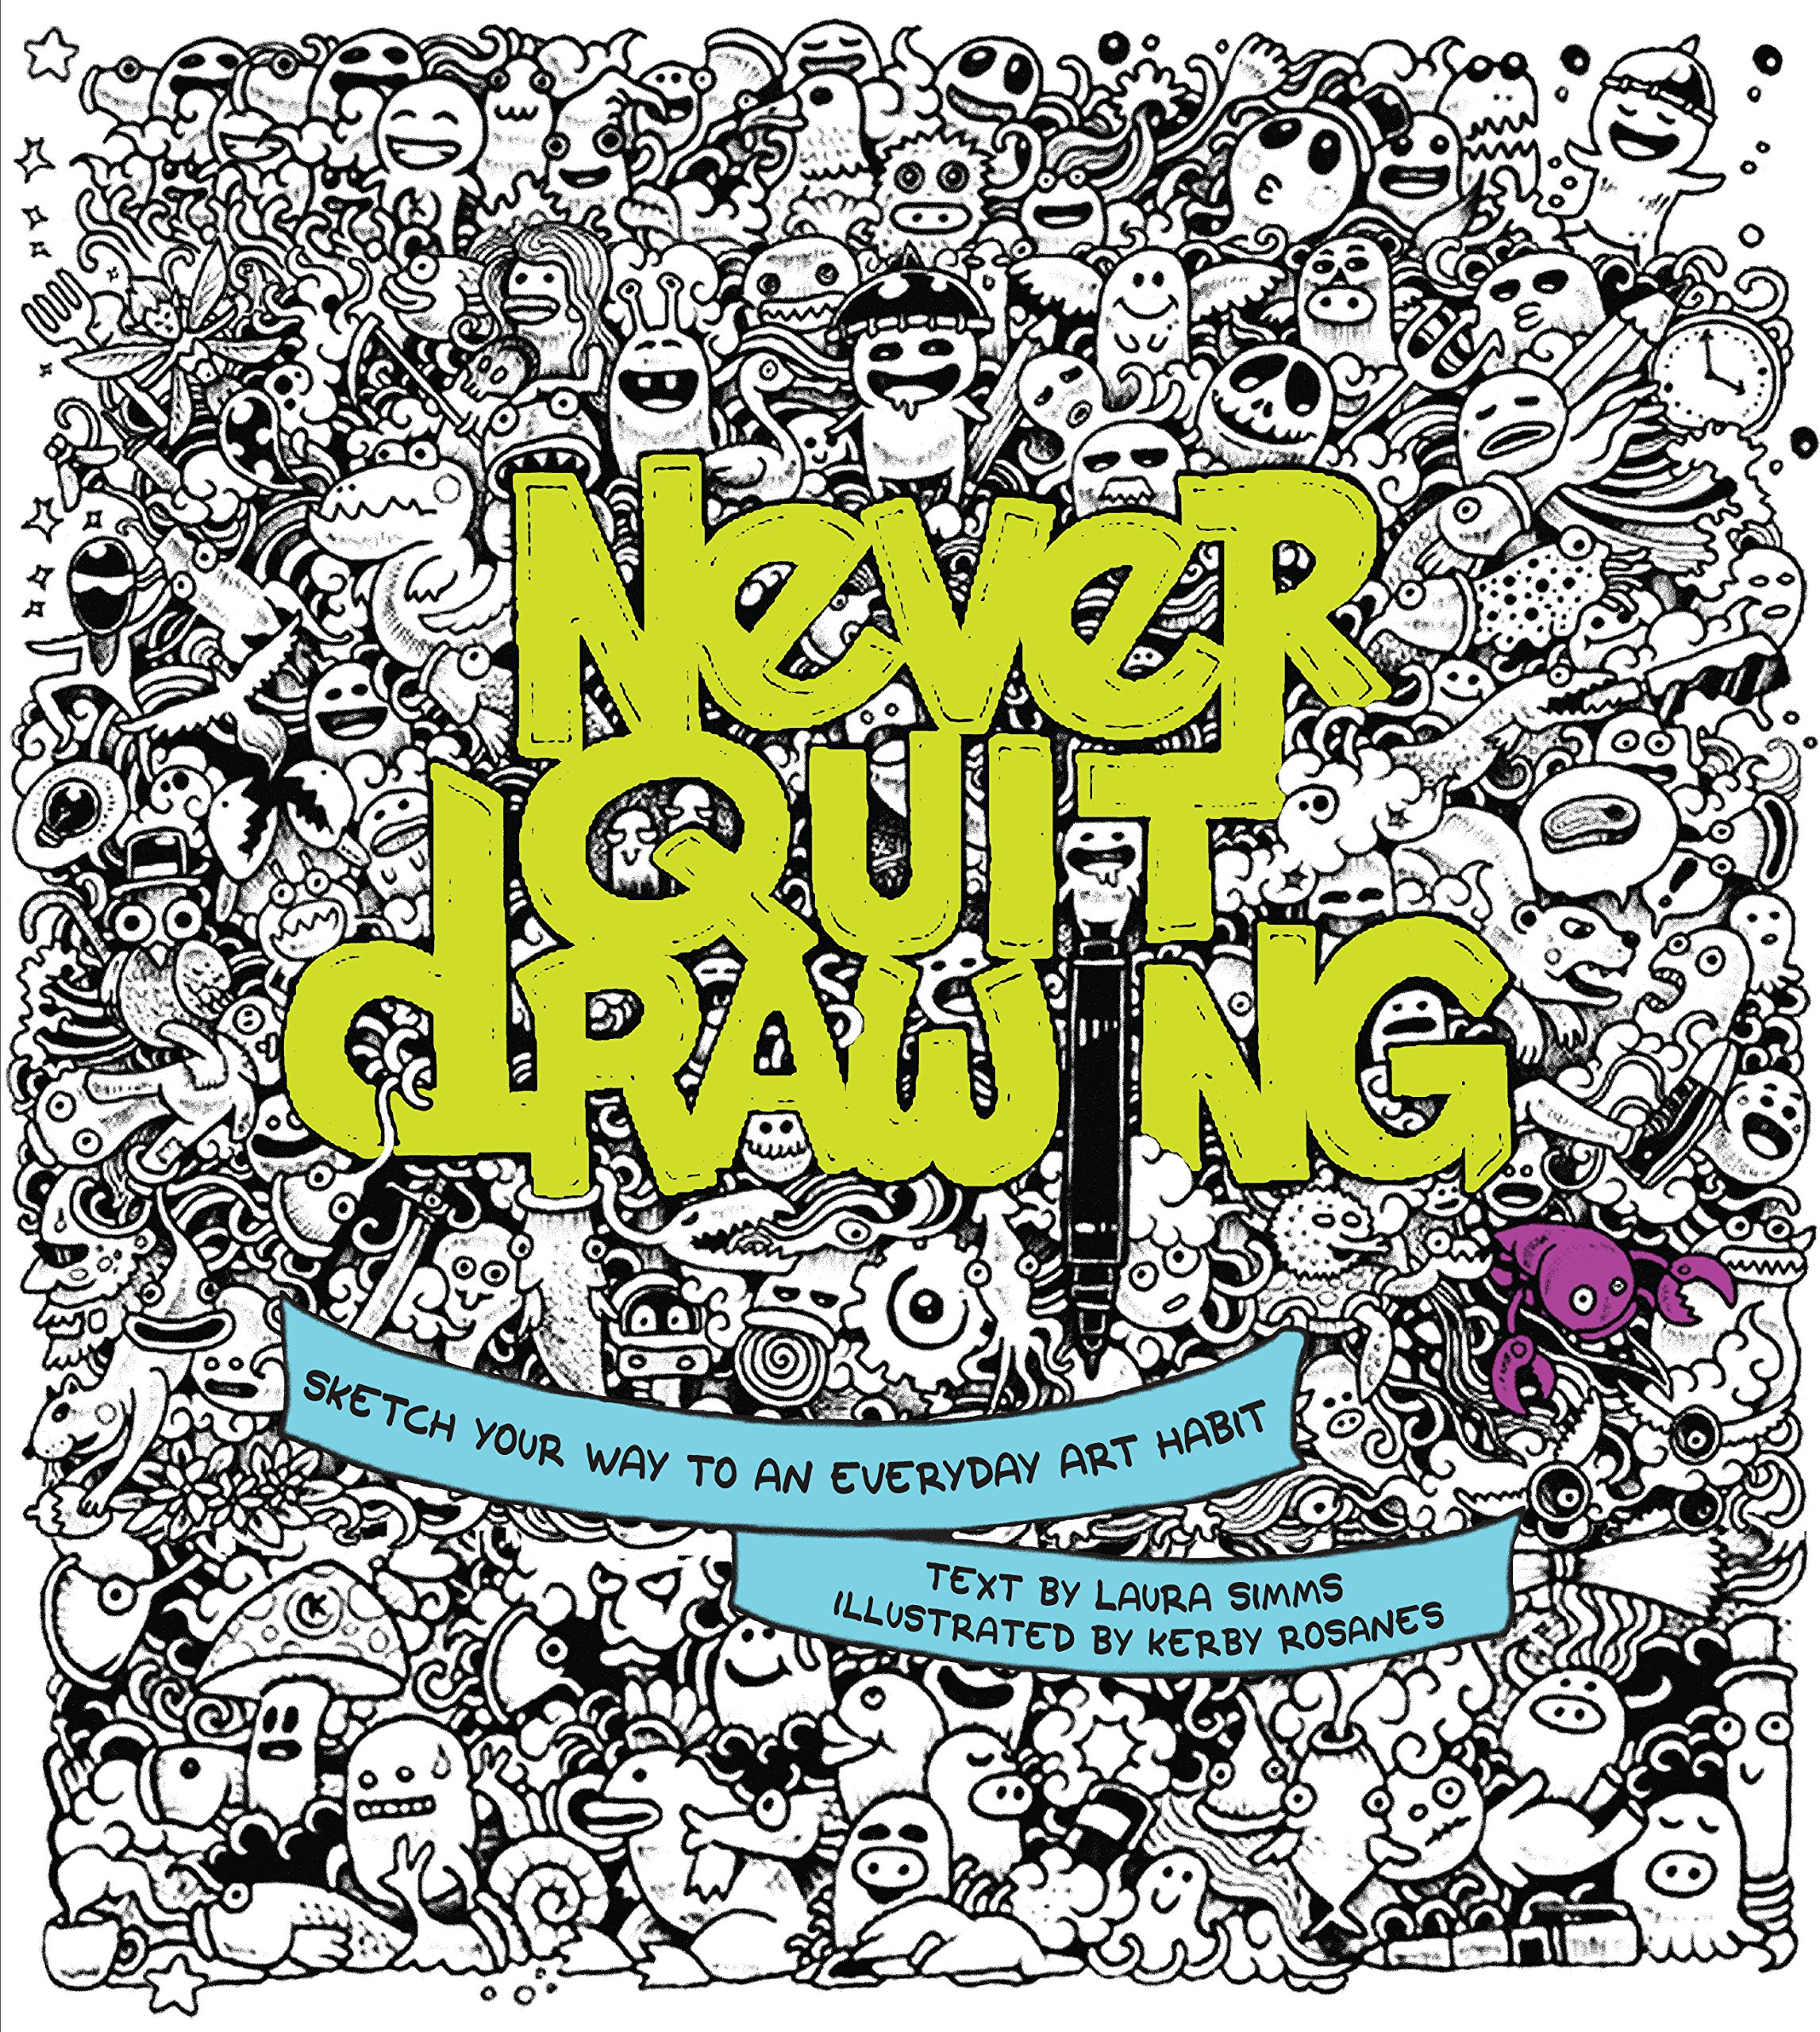 Never Quit Drawing Sketch Your Way To An Everyday Art Habit Laura Simms Kerby Rosanes 9781631061165 Amazon Books